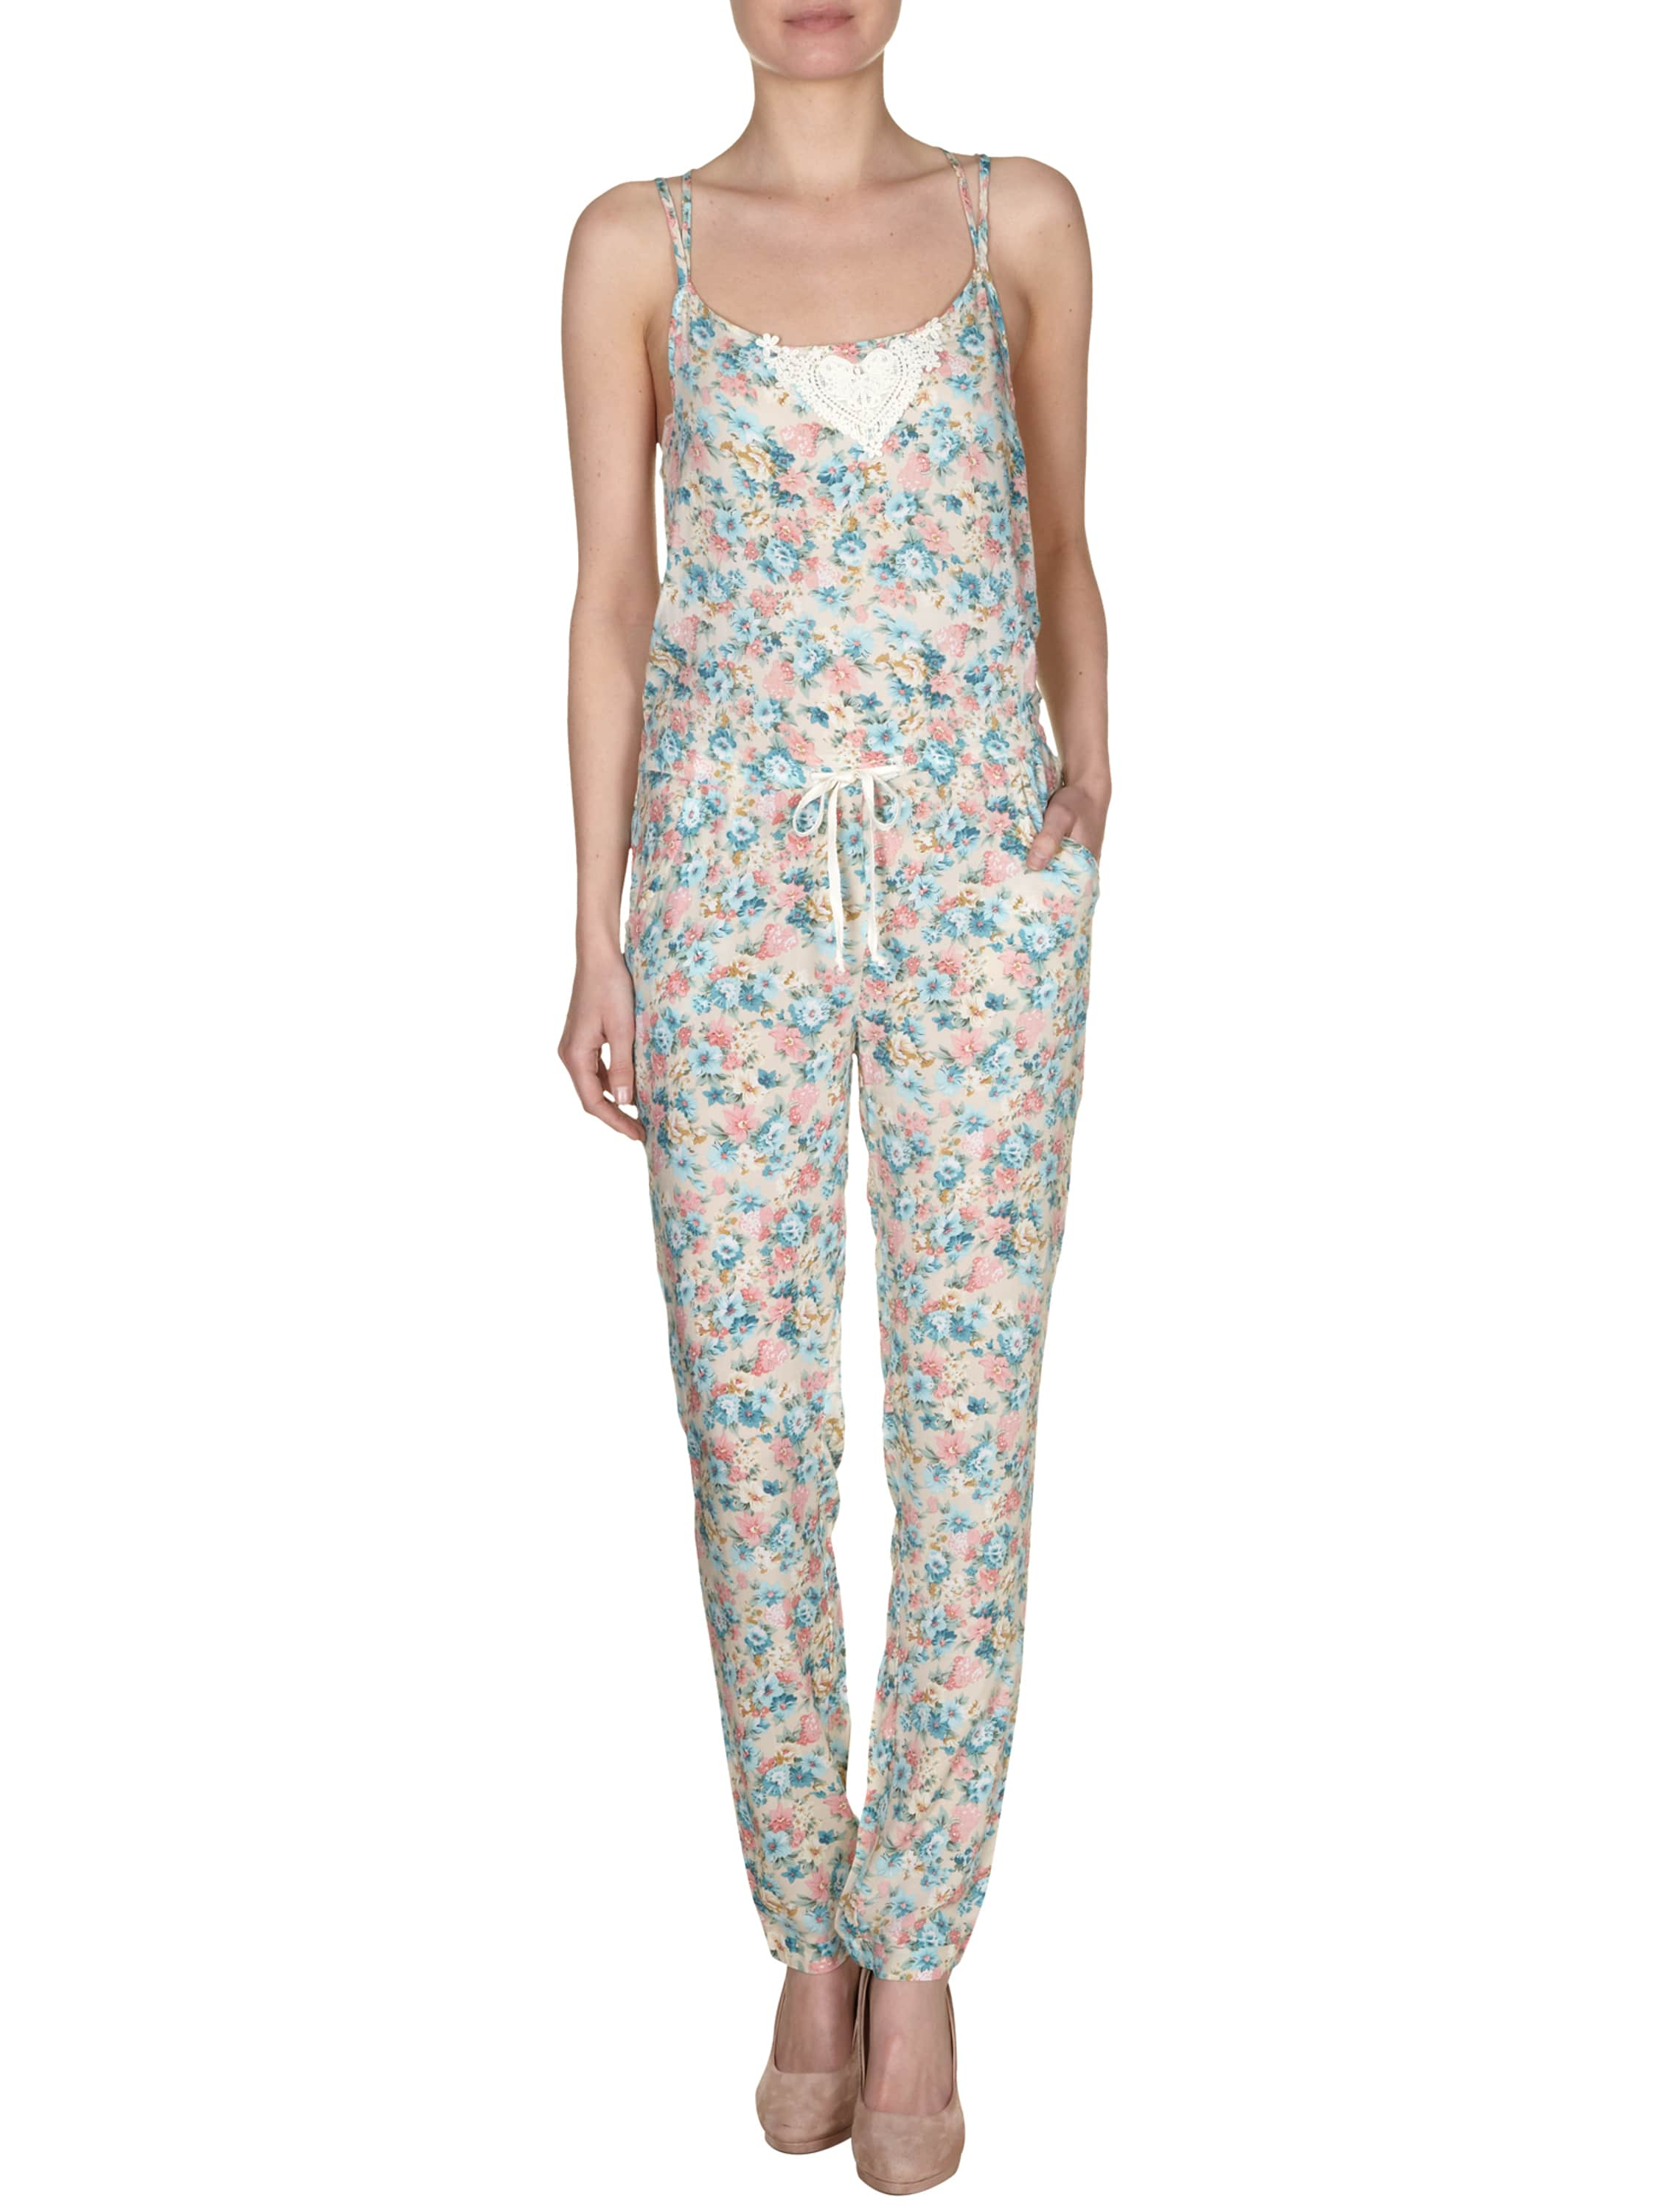 jumpsuit mit blumen muster fashion id online shop. Black Bedroom Furniture Sets. Home Design Ideas